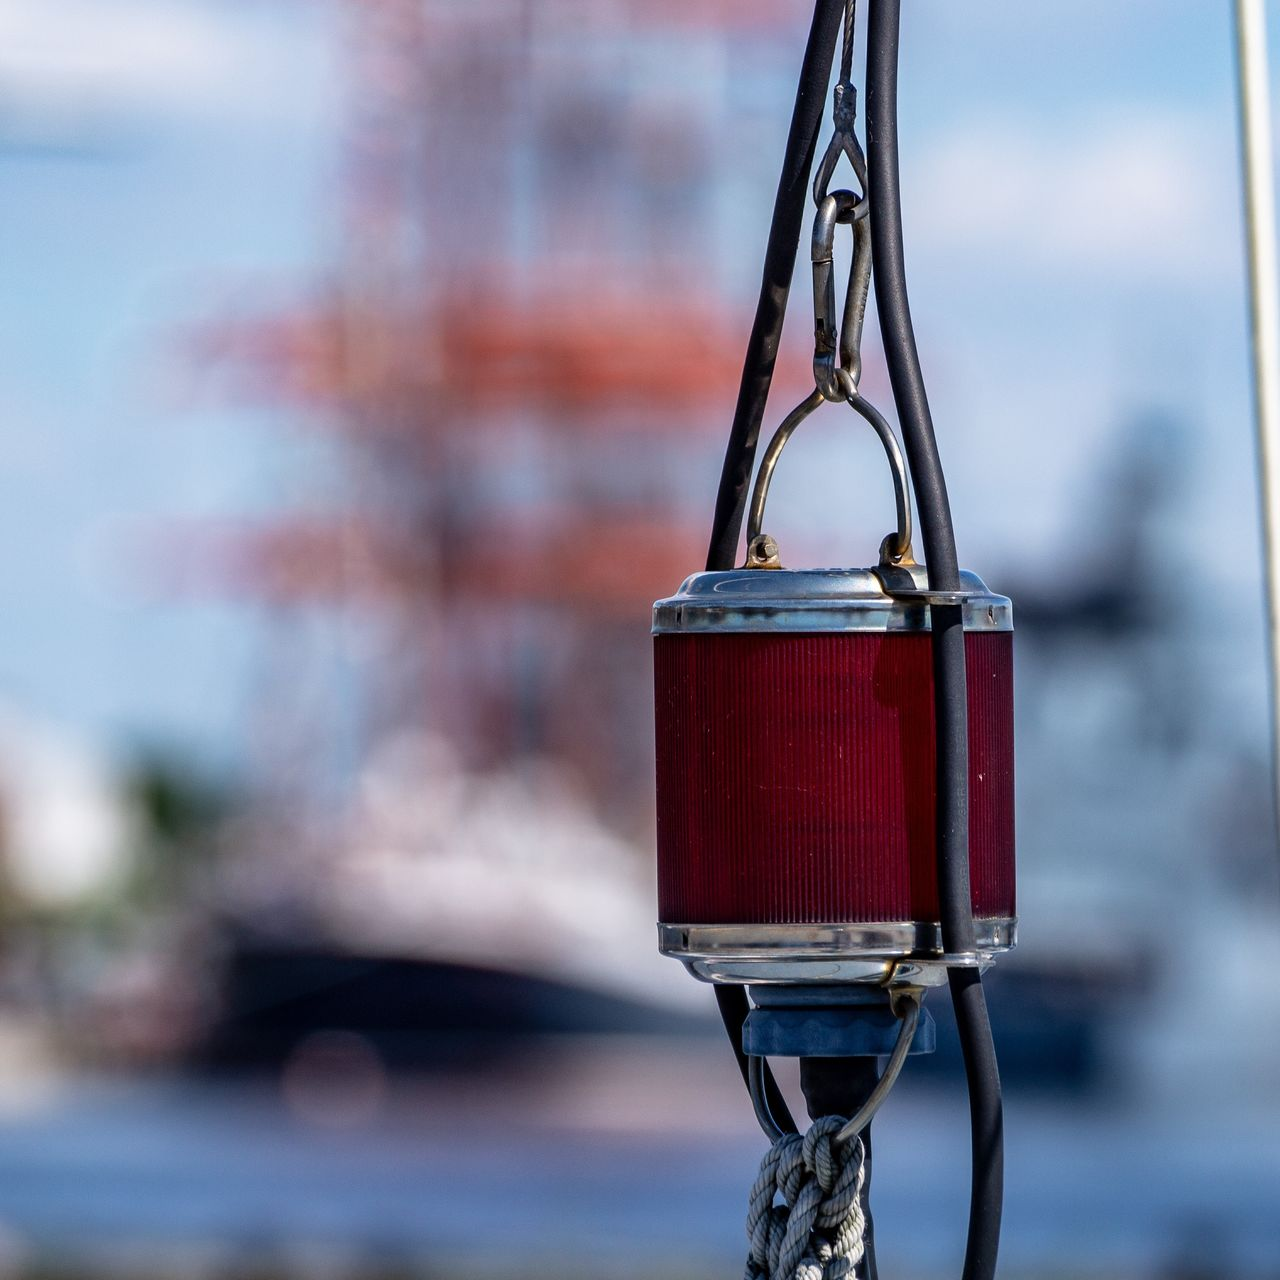 focus on foreground, day, metal, close-up, red, no people, hanging, outdoors, lighting equipment, transportation, mode of transportation, land vehicle, nature, bicycle, glass - material, sunlight, shape, selective focus, railing, bell